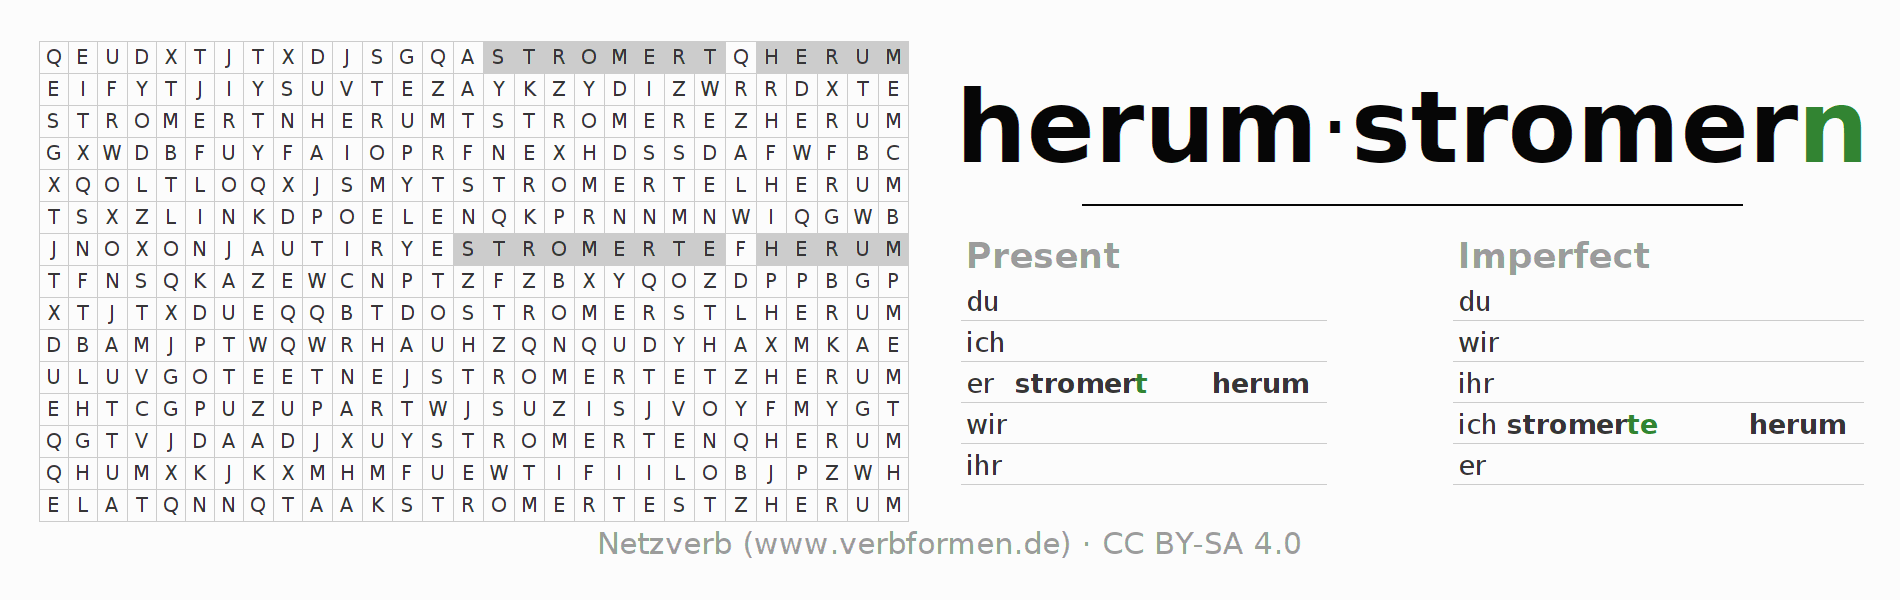 Word search puzzle for the conjugation of the verb herumstromern